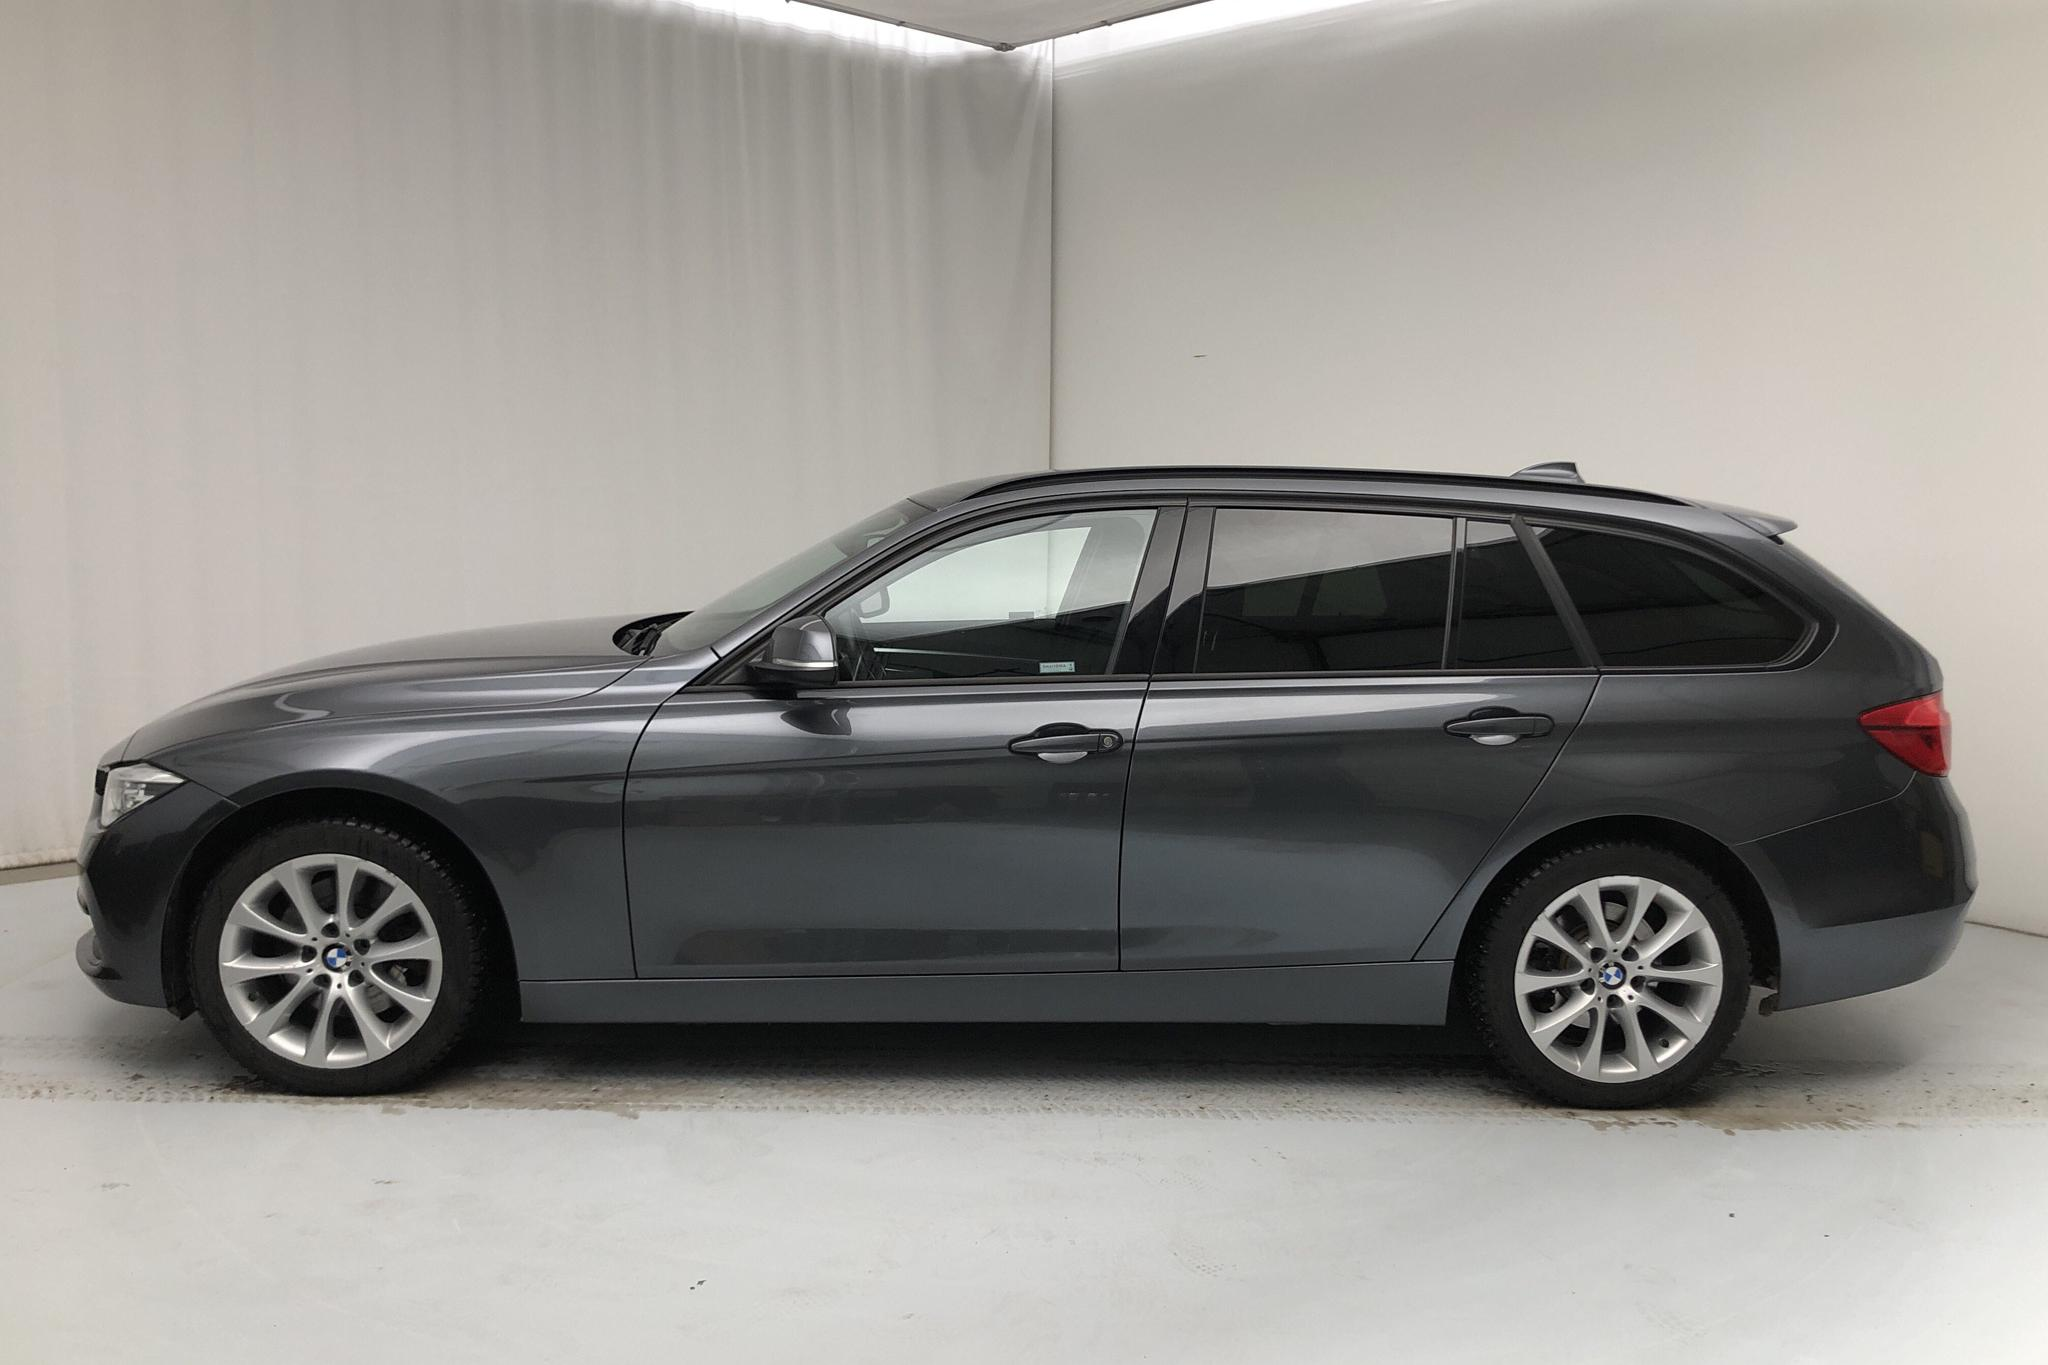 BMW 330i xDrive Touring, F31 (252hk) - 52 150 km - Automatic - gray - 2018